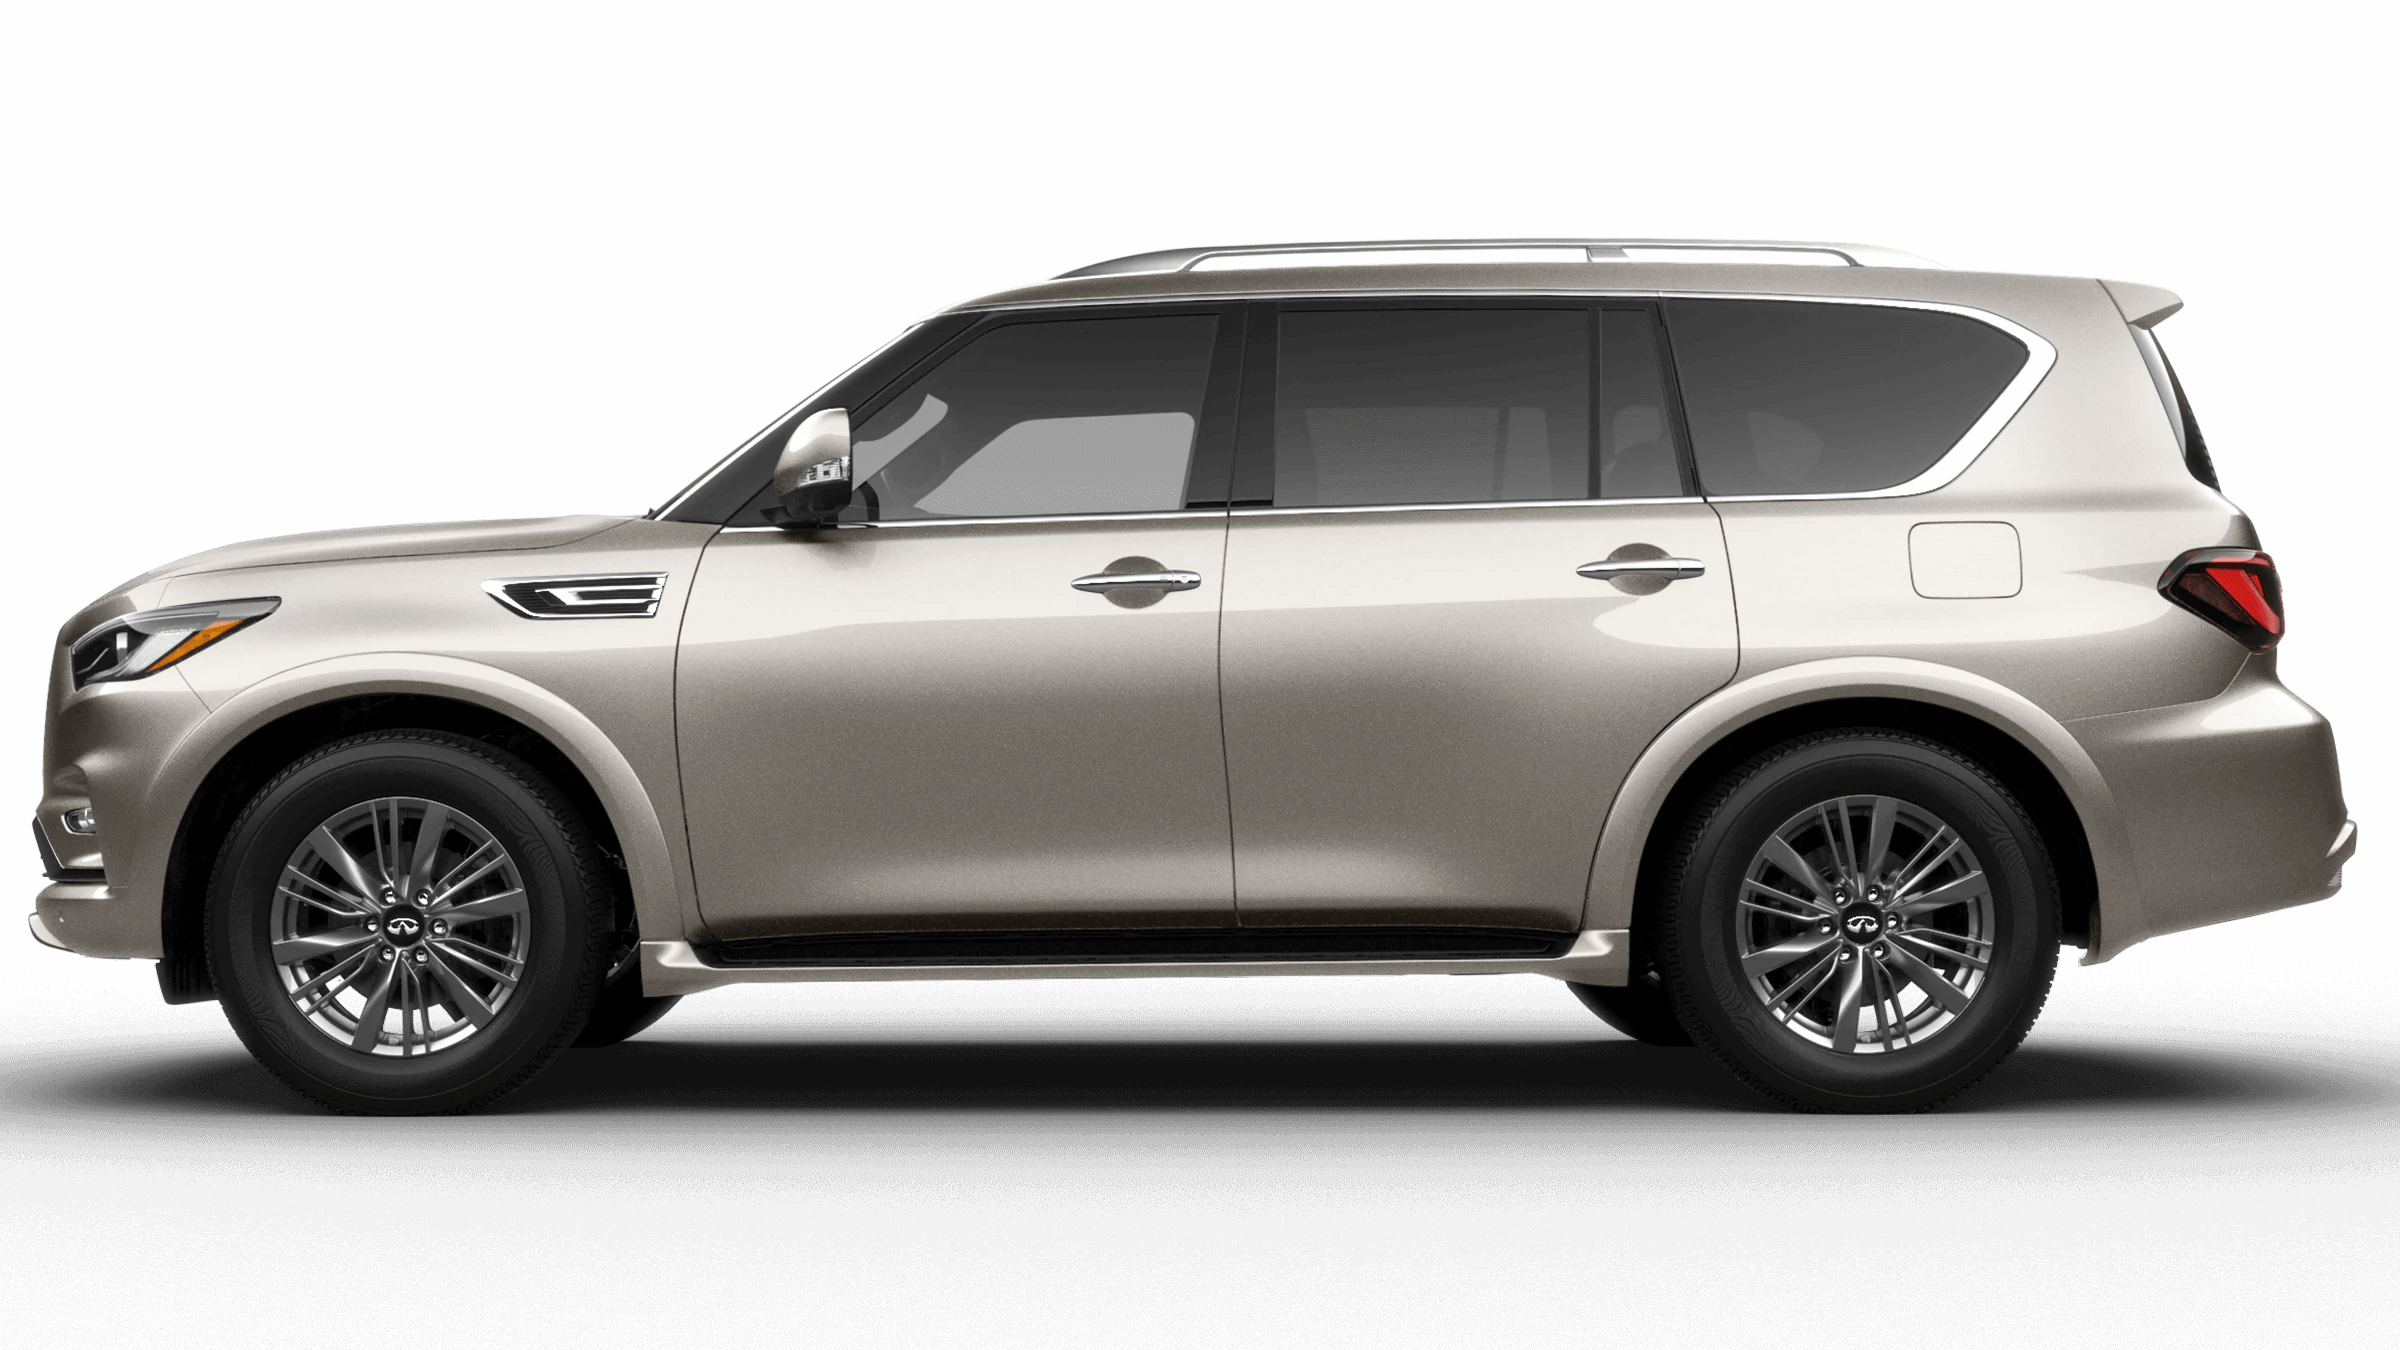 New 2021 Infiniti Qx80 Pure RWD model for sale at Oxnard Infiniti dealership near Thousand Oaks, CA